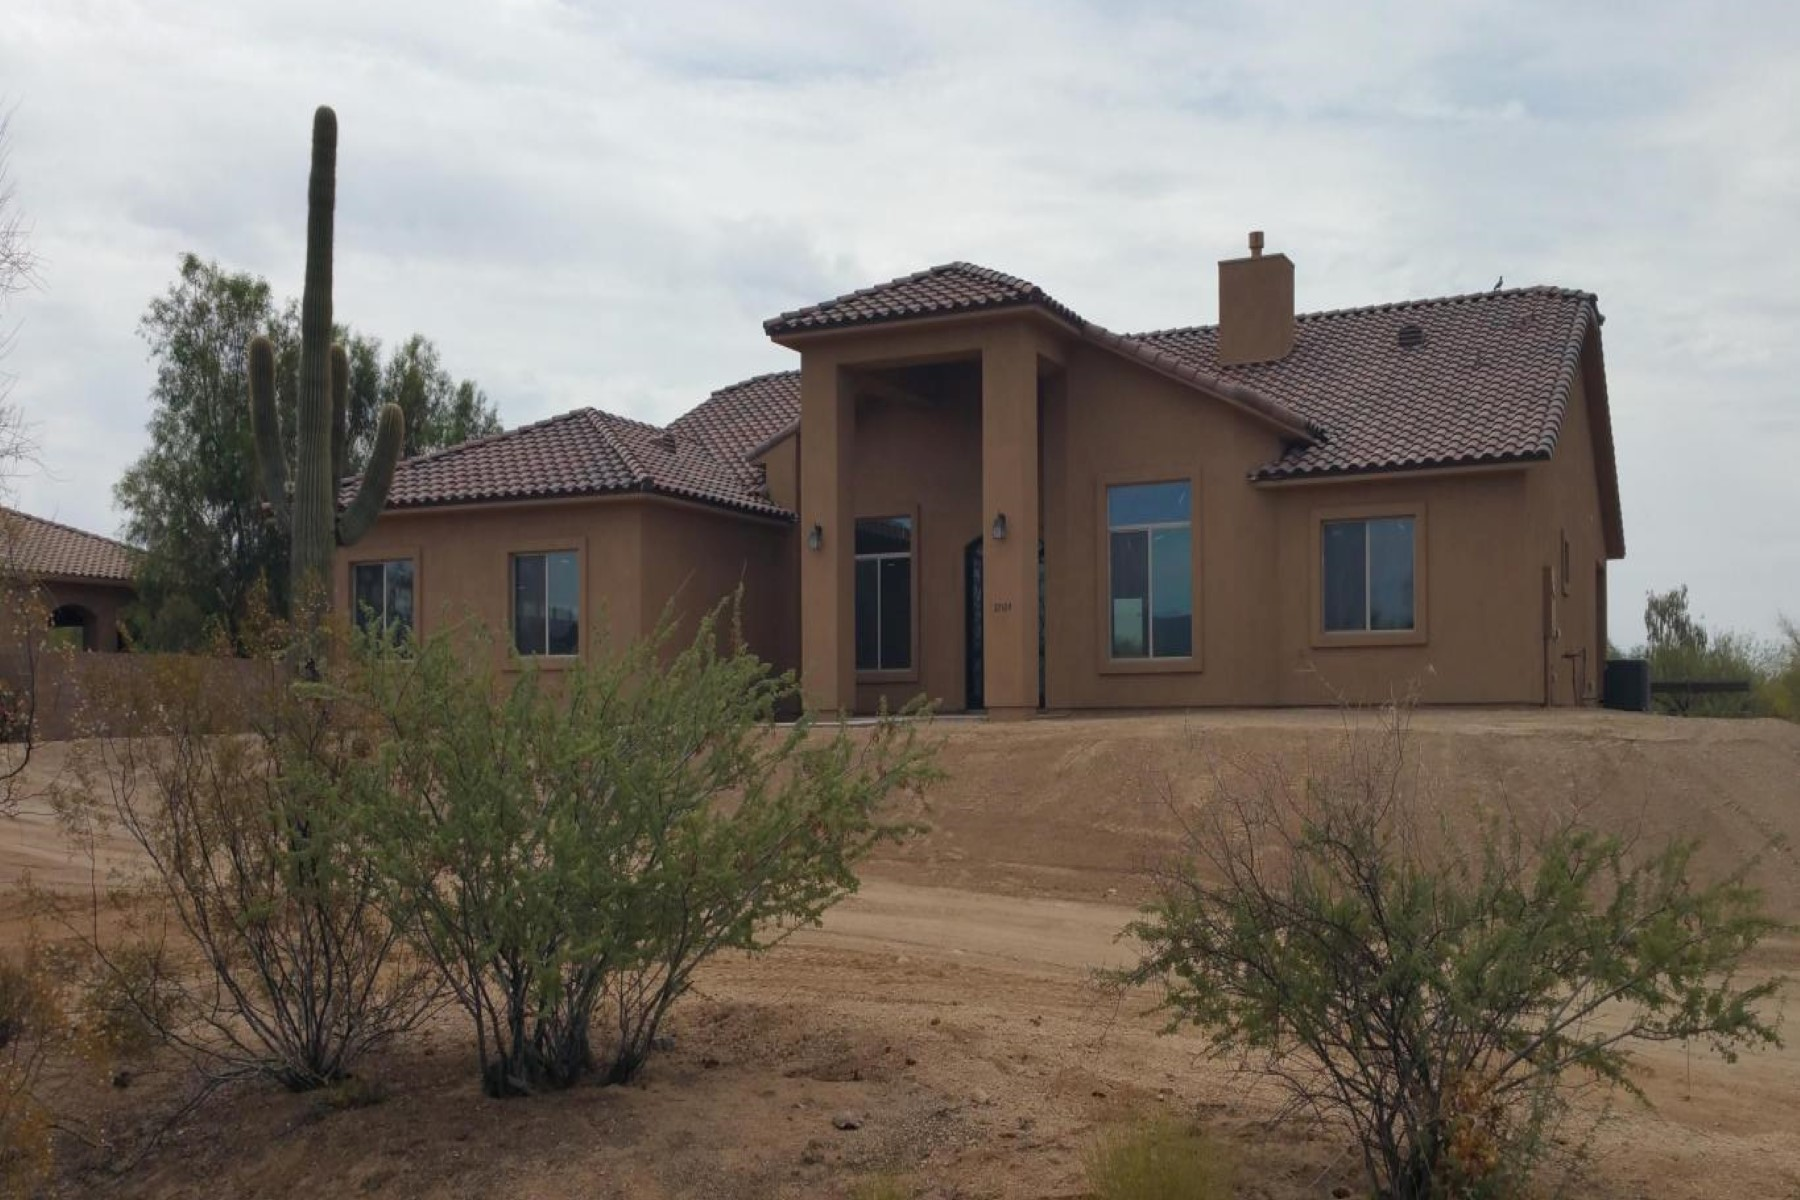 Single Family Home for Sale at Beautiful elevated lot with natural desert front yard 6601 E Ashler Hills Dr Cave Creek, Arizona, 85331 United States